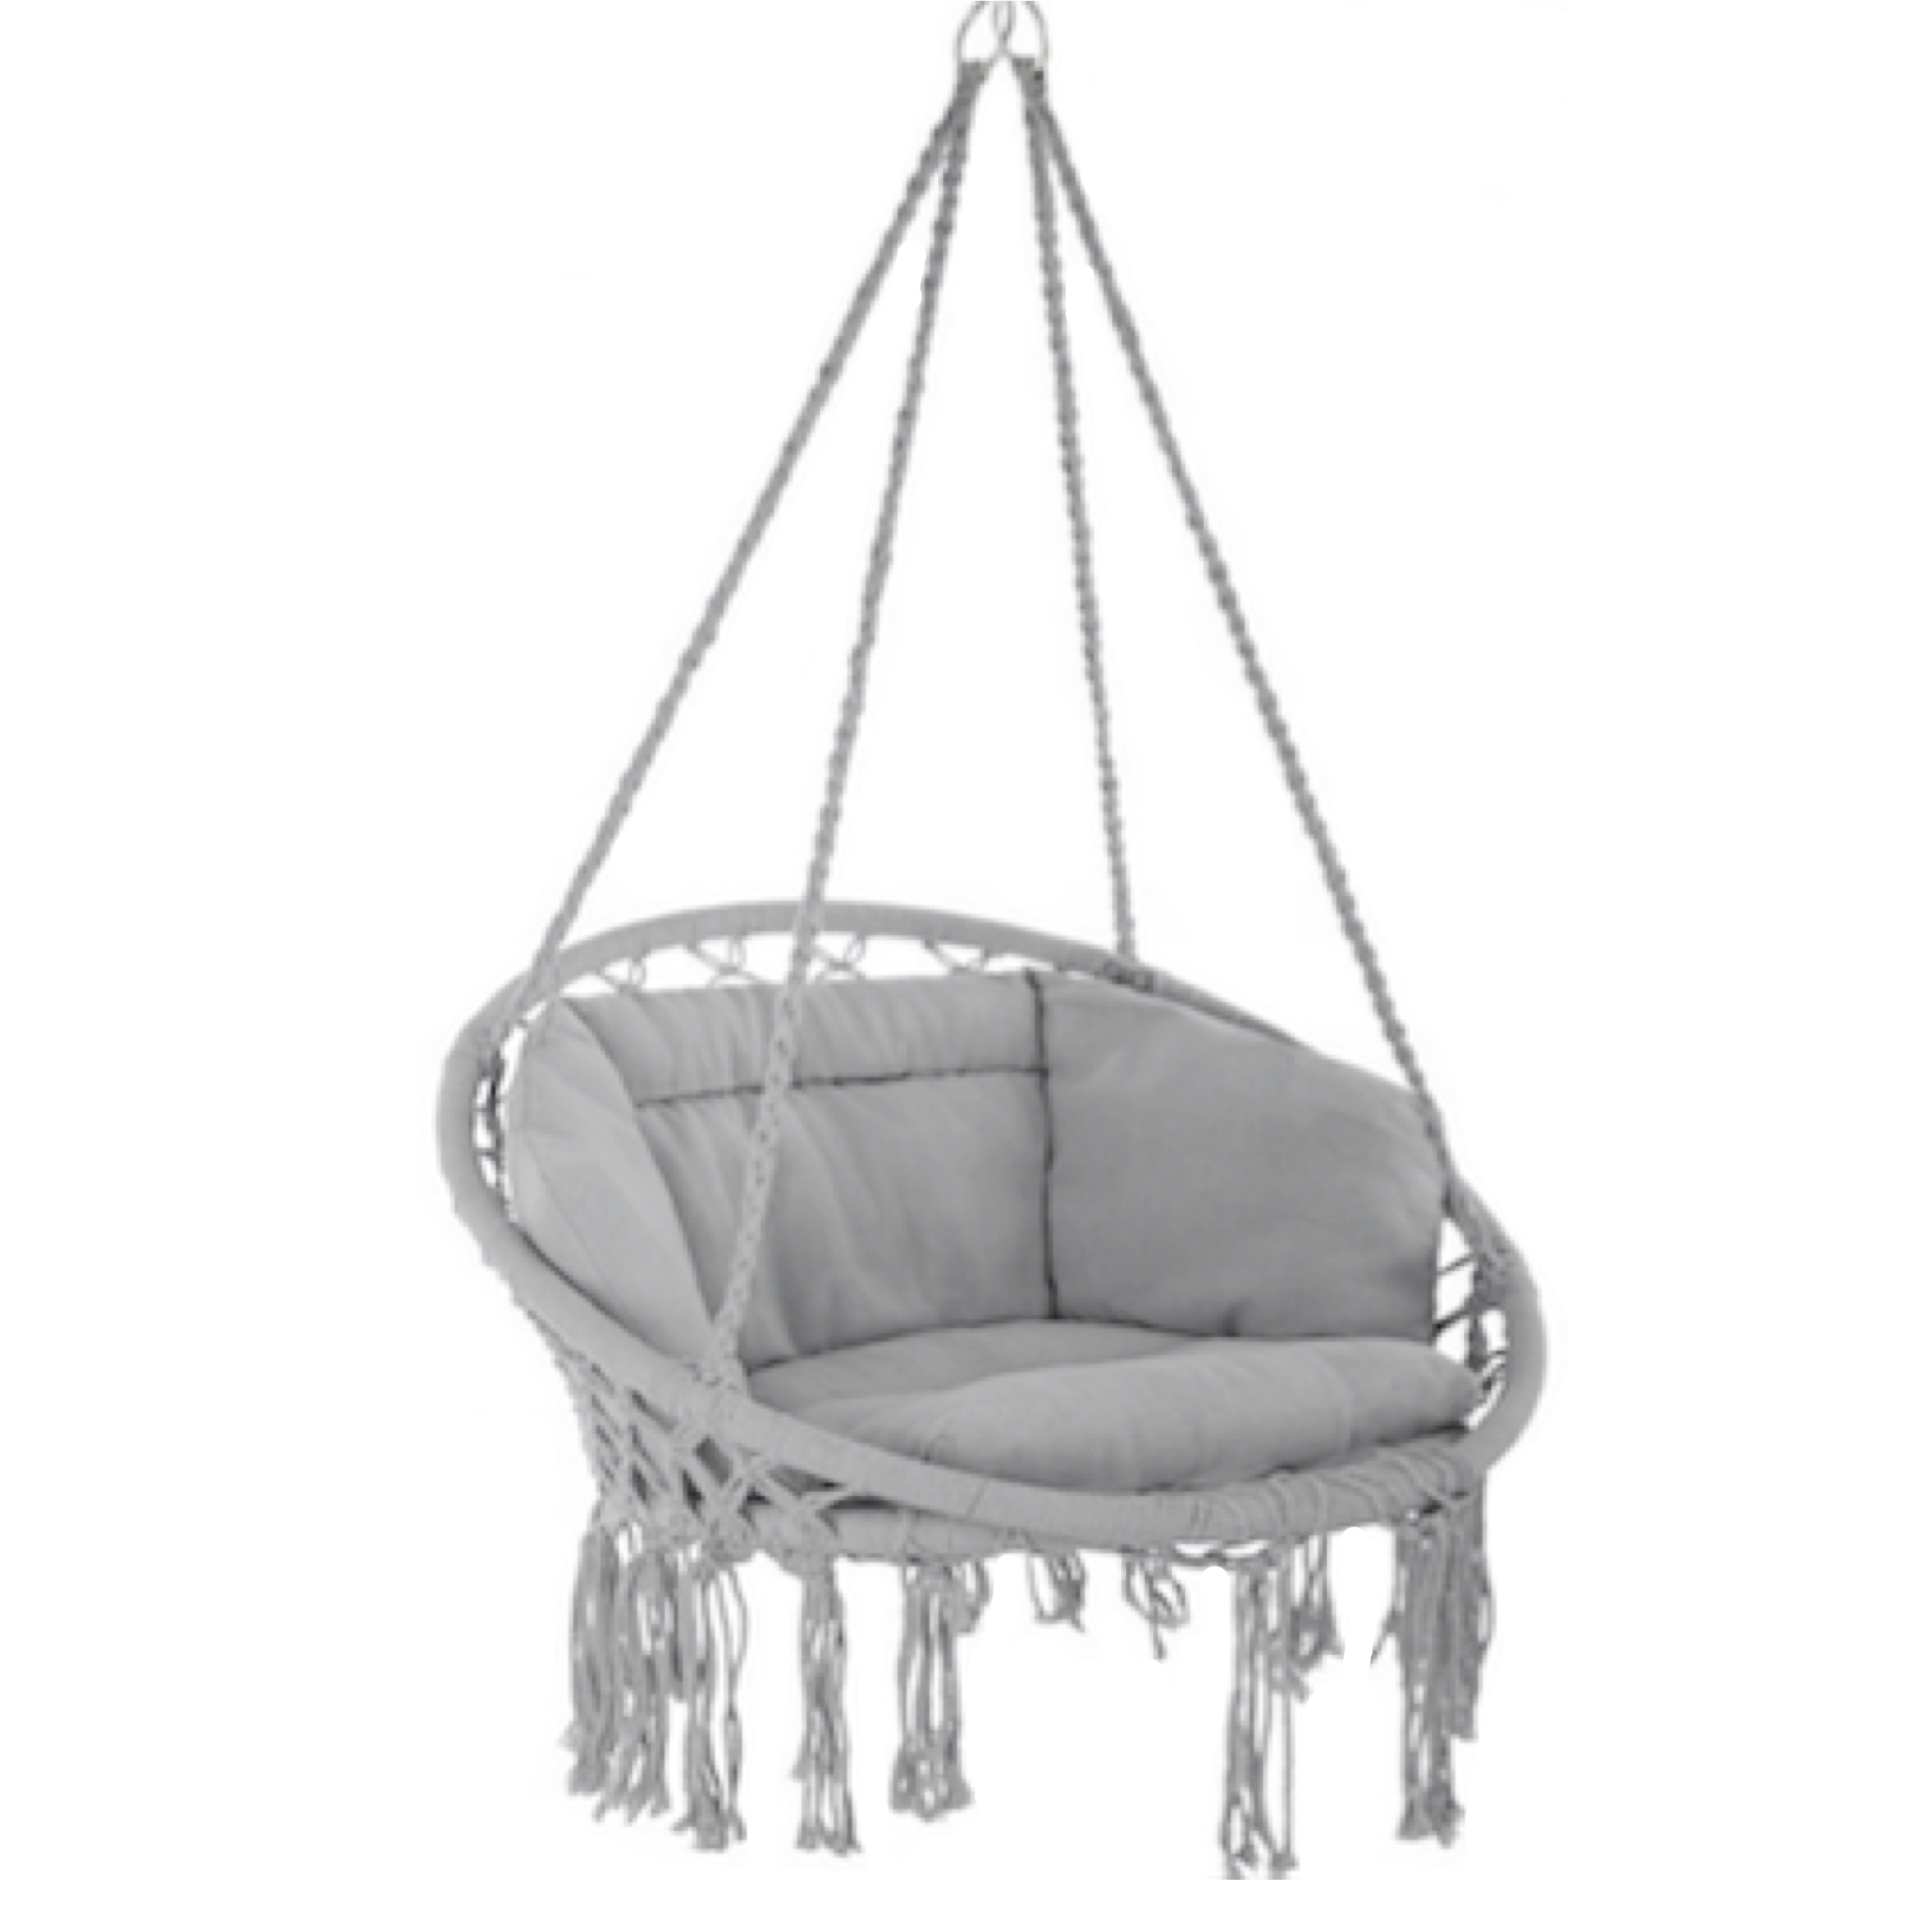 HOT SALES Swing Garden Handmade Polycotton Patio Swing Chair